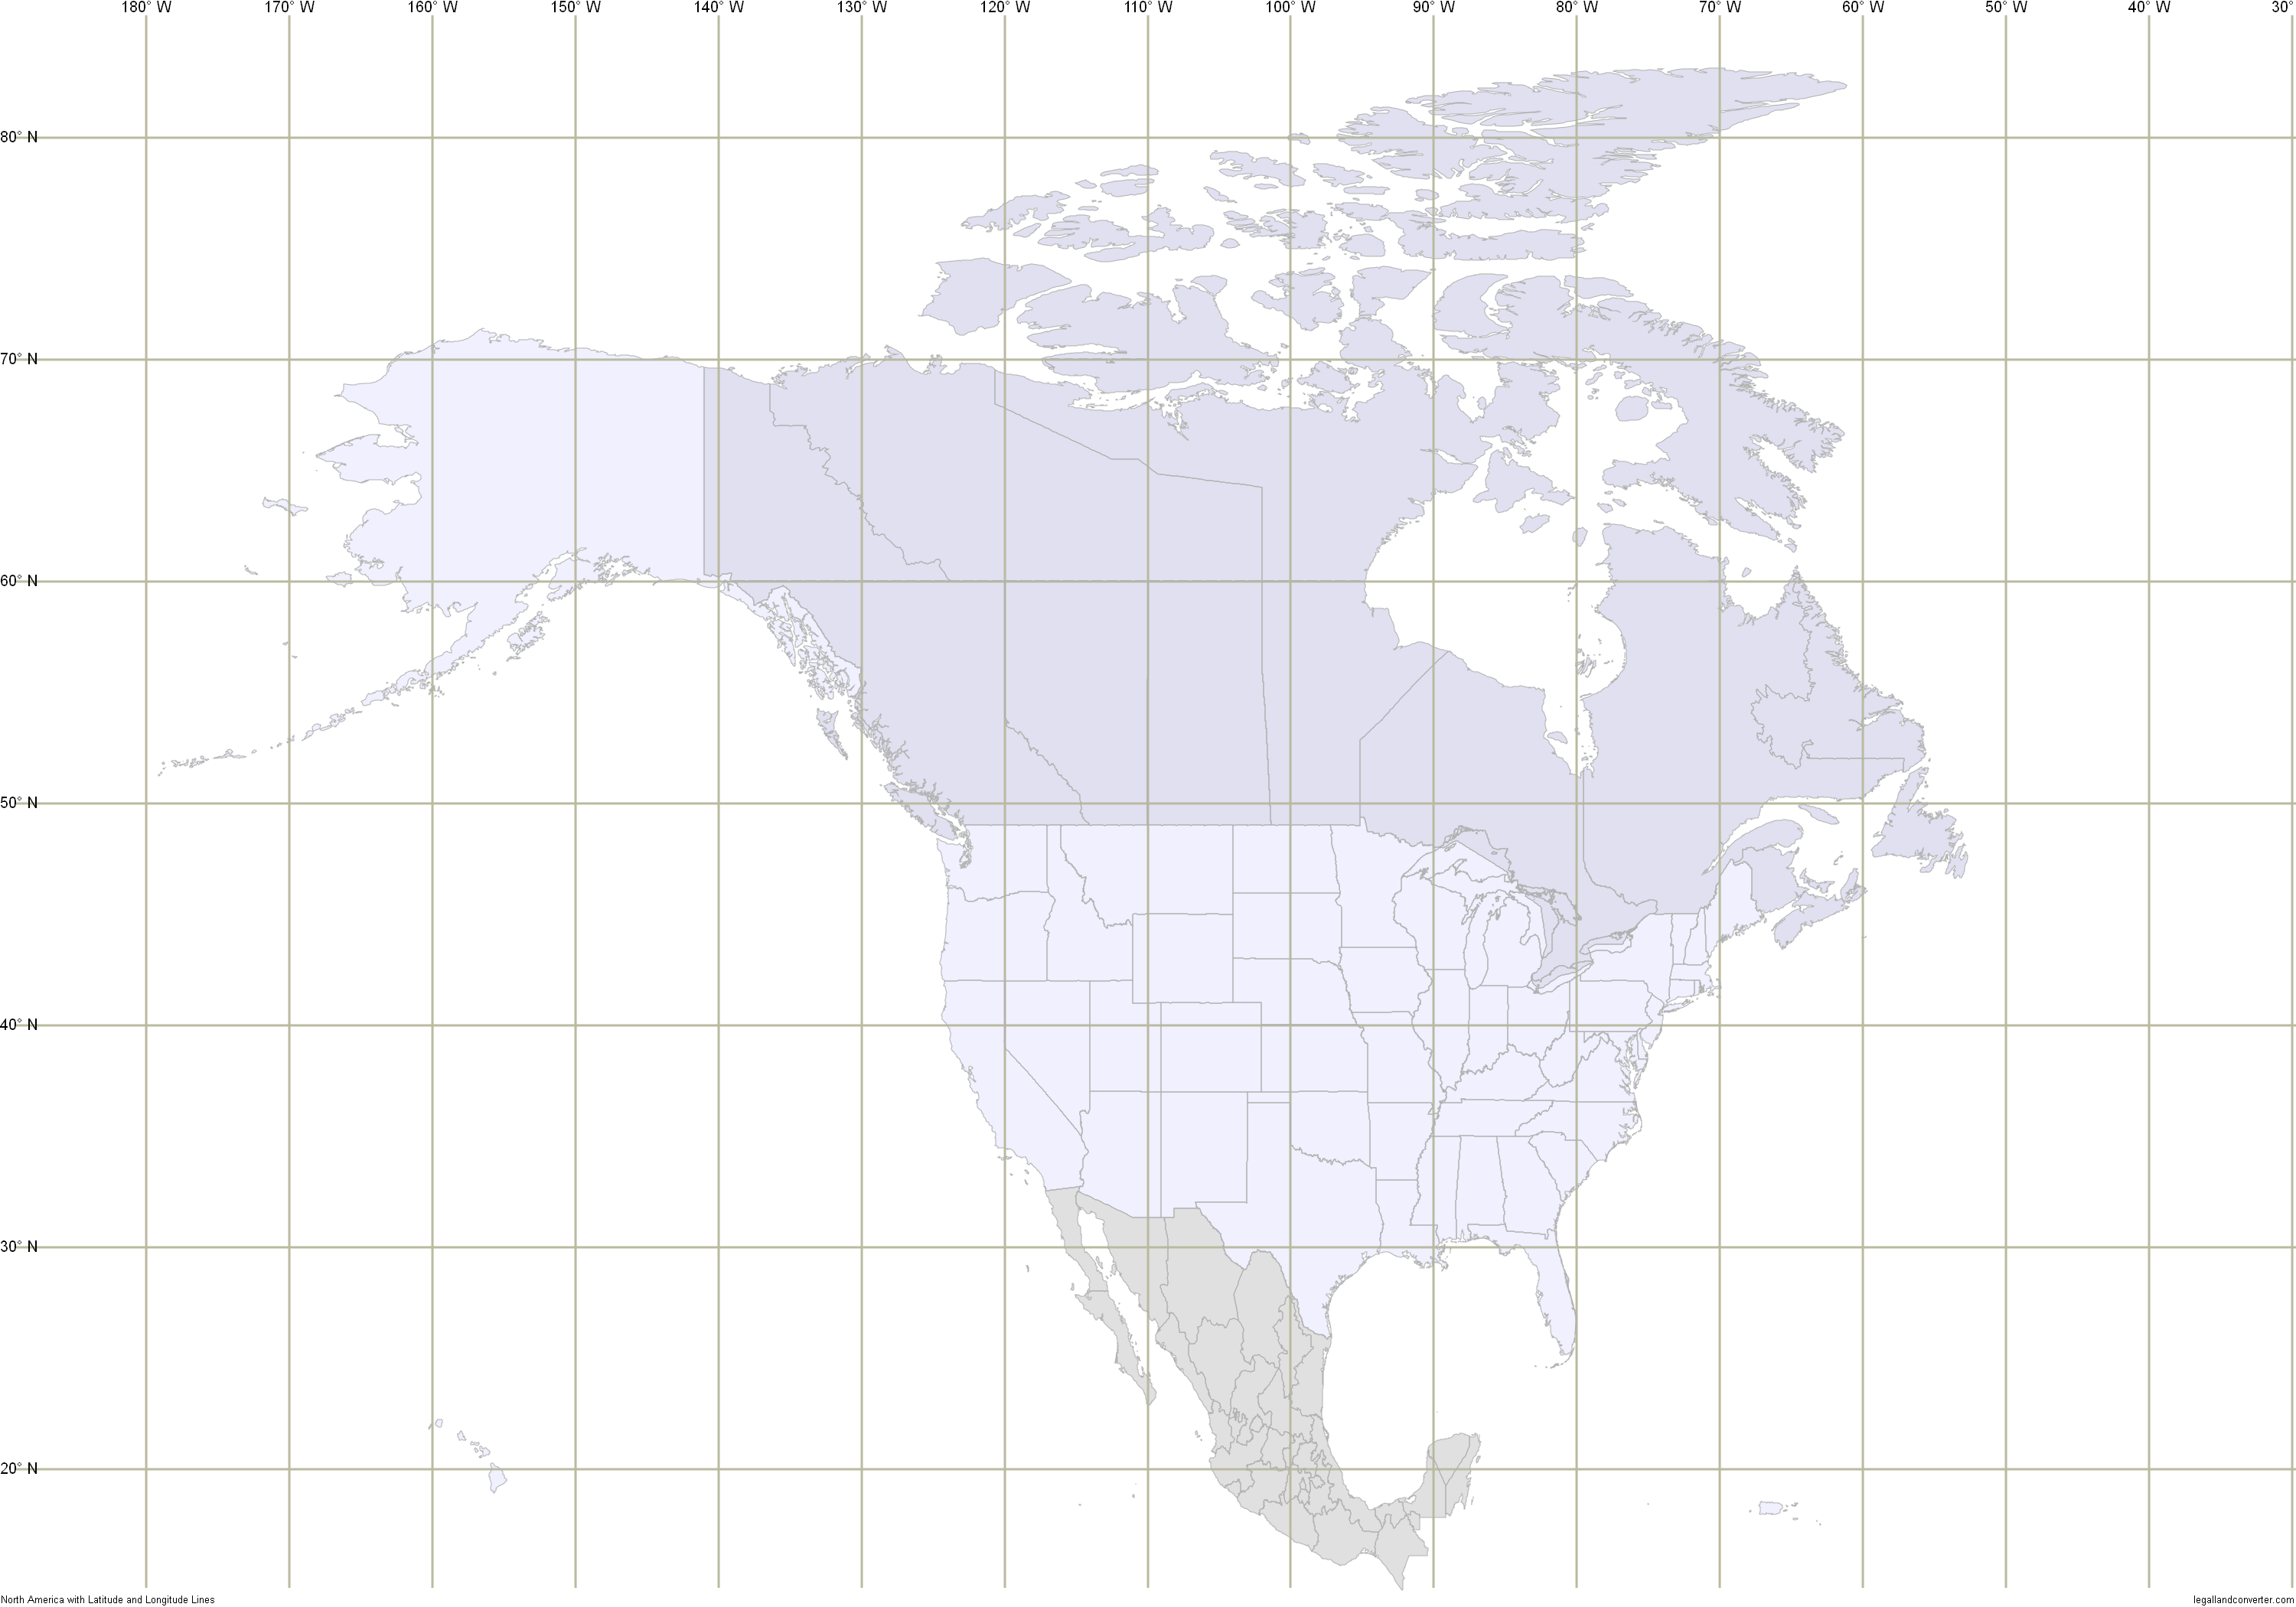 Map Of North America With Latitude And Longitude Grid - Usa map with latitude and longitude